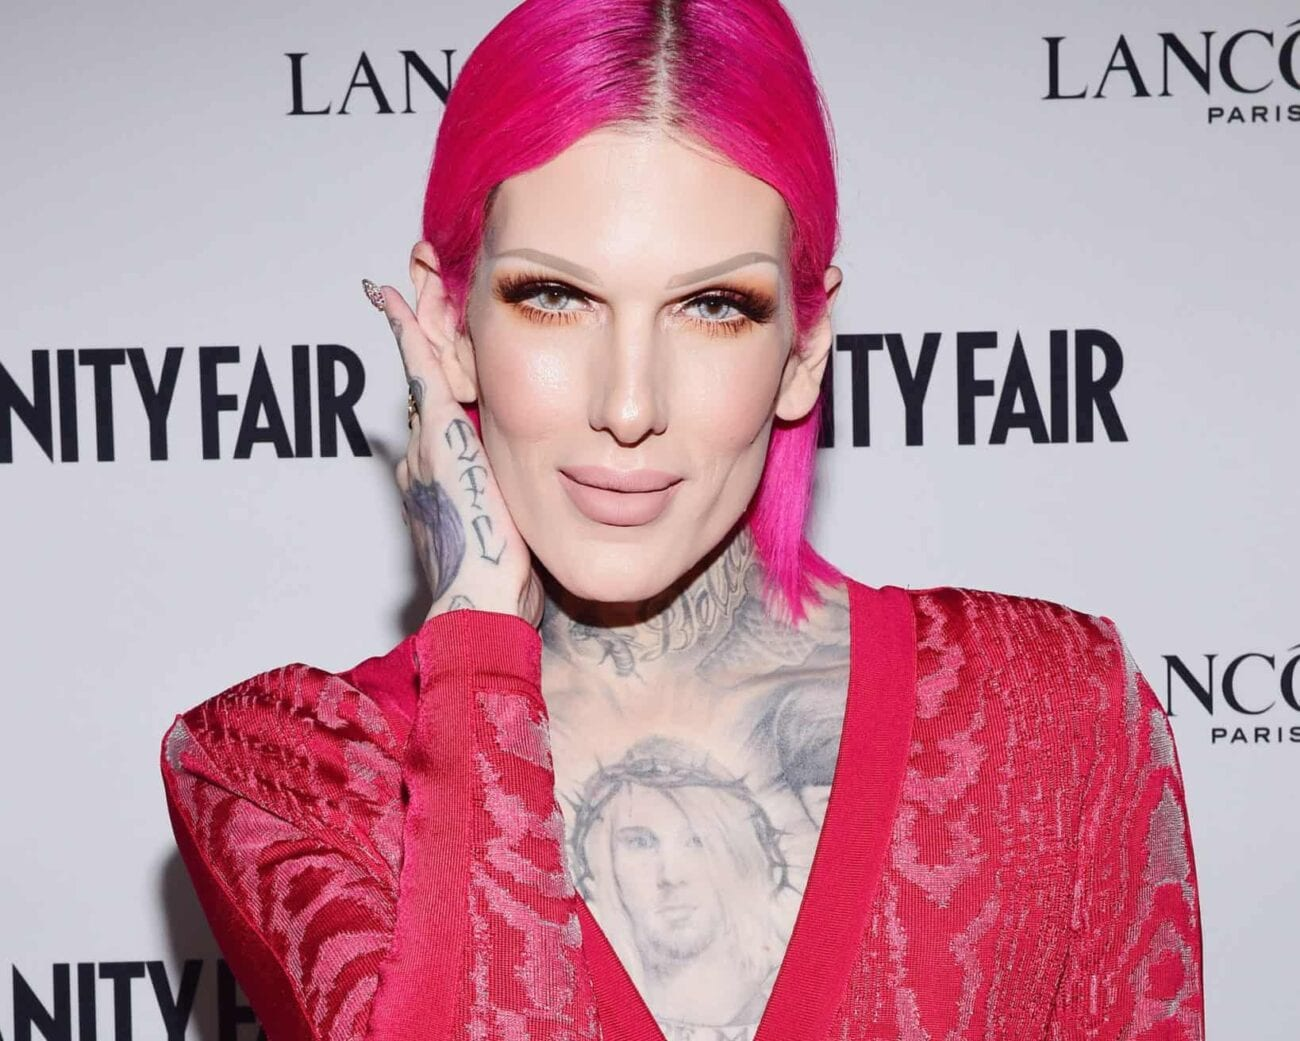 Jeffree Star just cannot escape the ire of the public this year. Now, the internet is wondering if the YouTuber wants to boost his net worth with fracking.